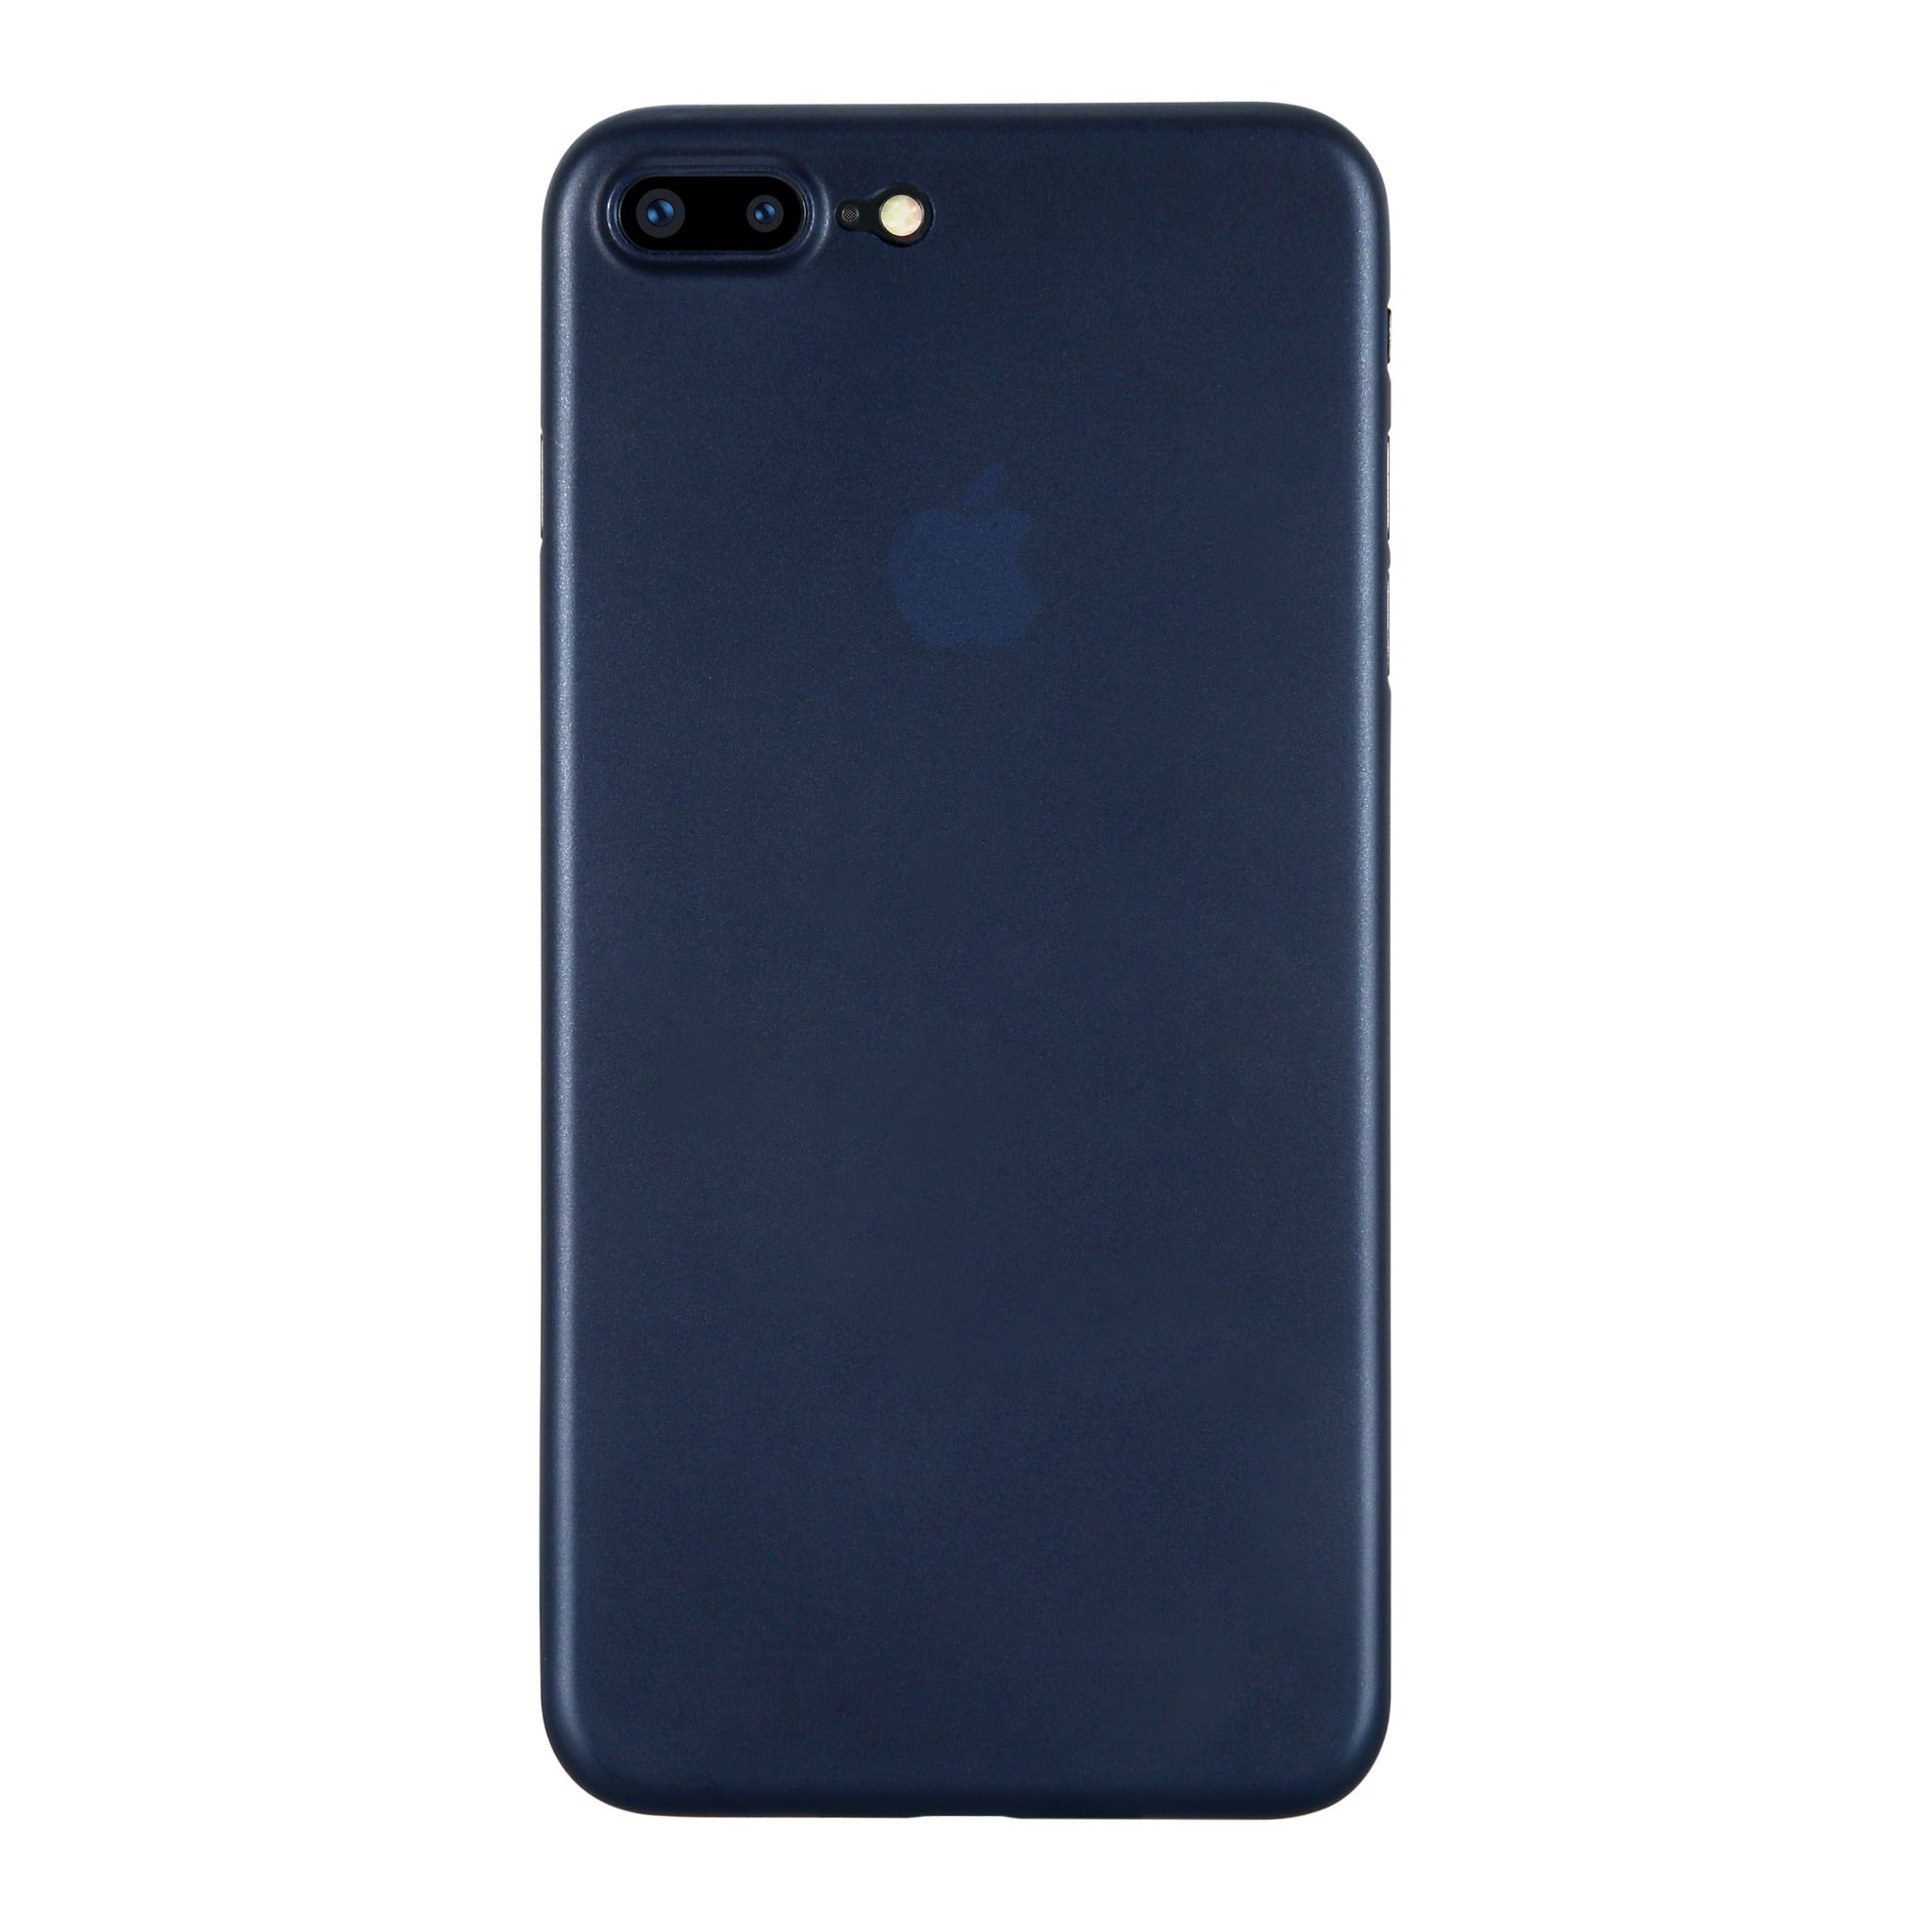 promo code 6bb1a 238fd Go Original iPhone 7 Plus Slim Case